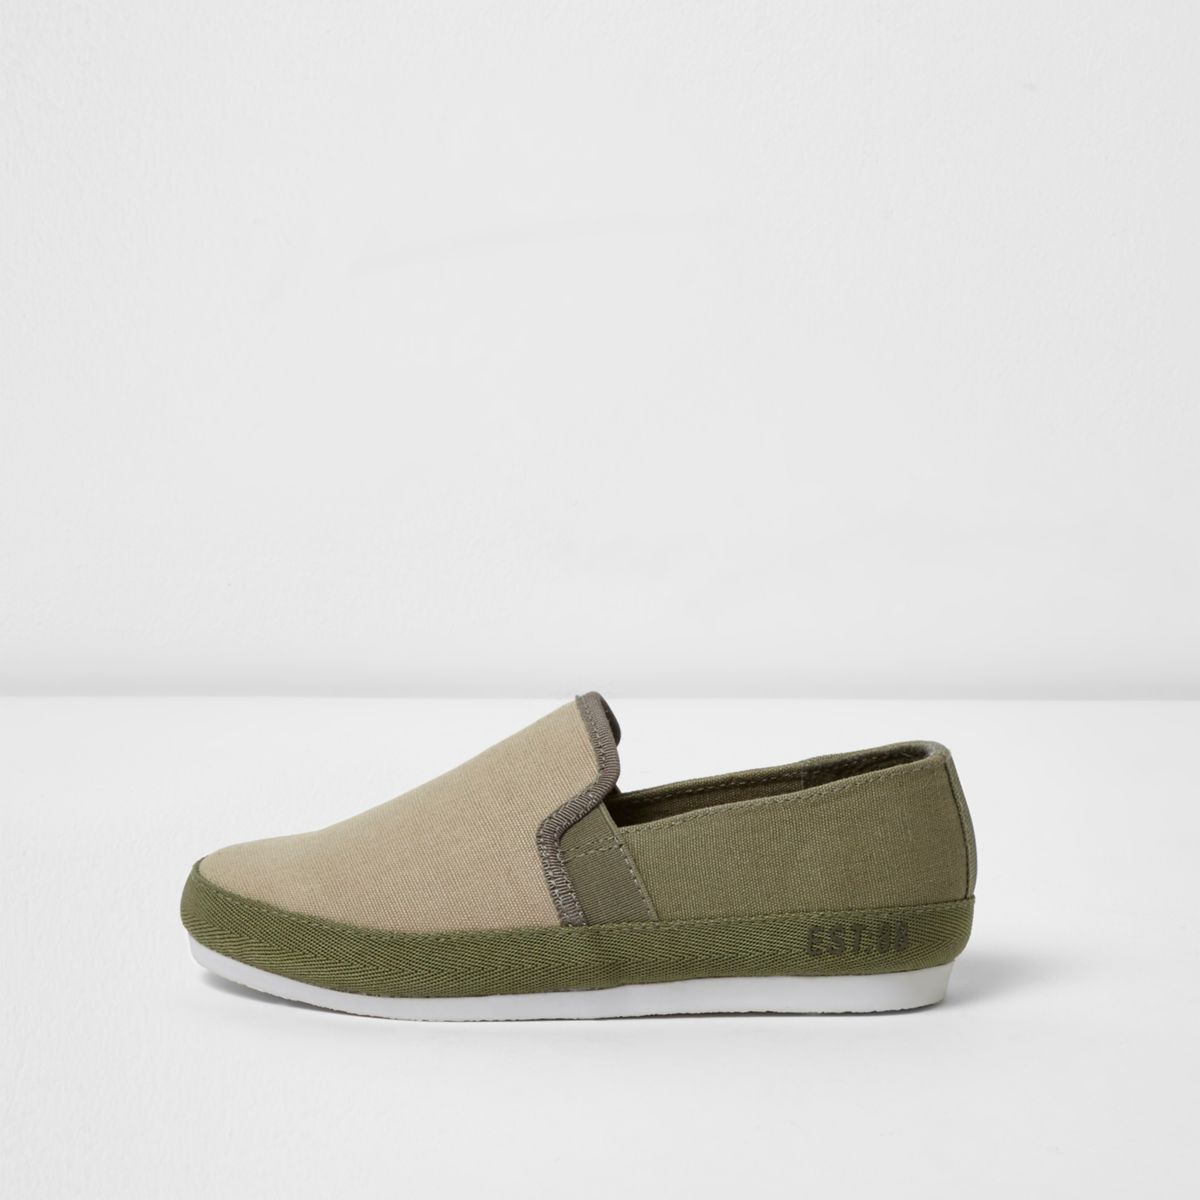 Boys light brown slip on plimsolls